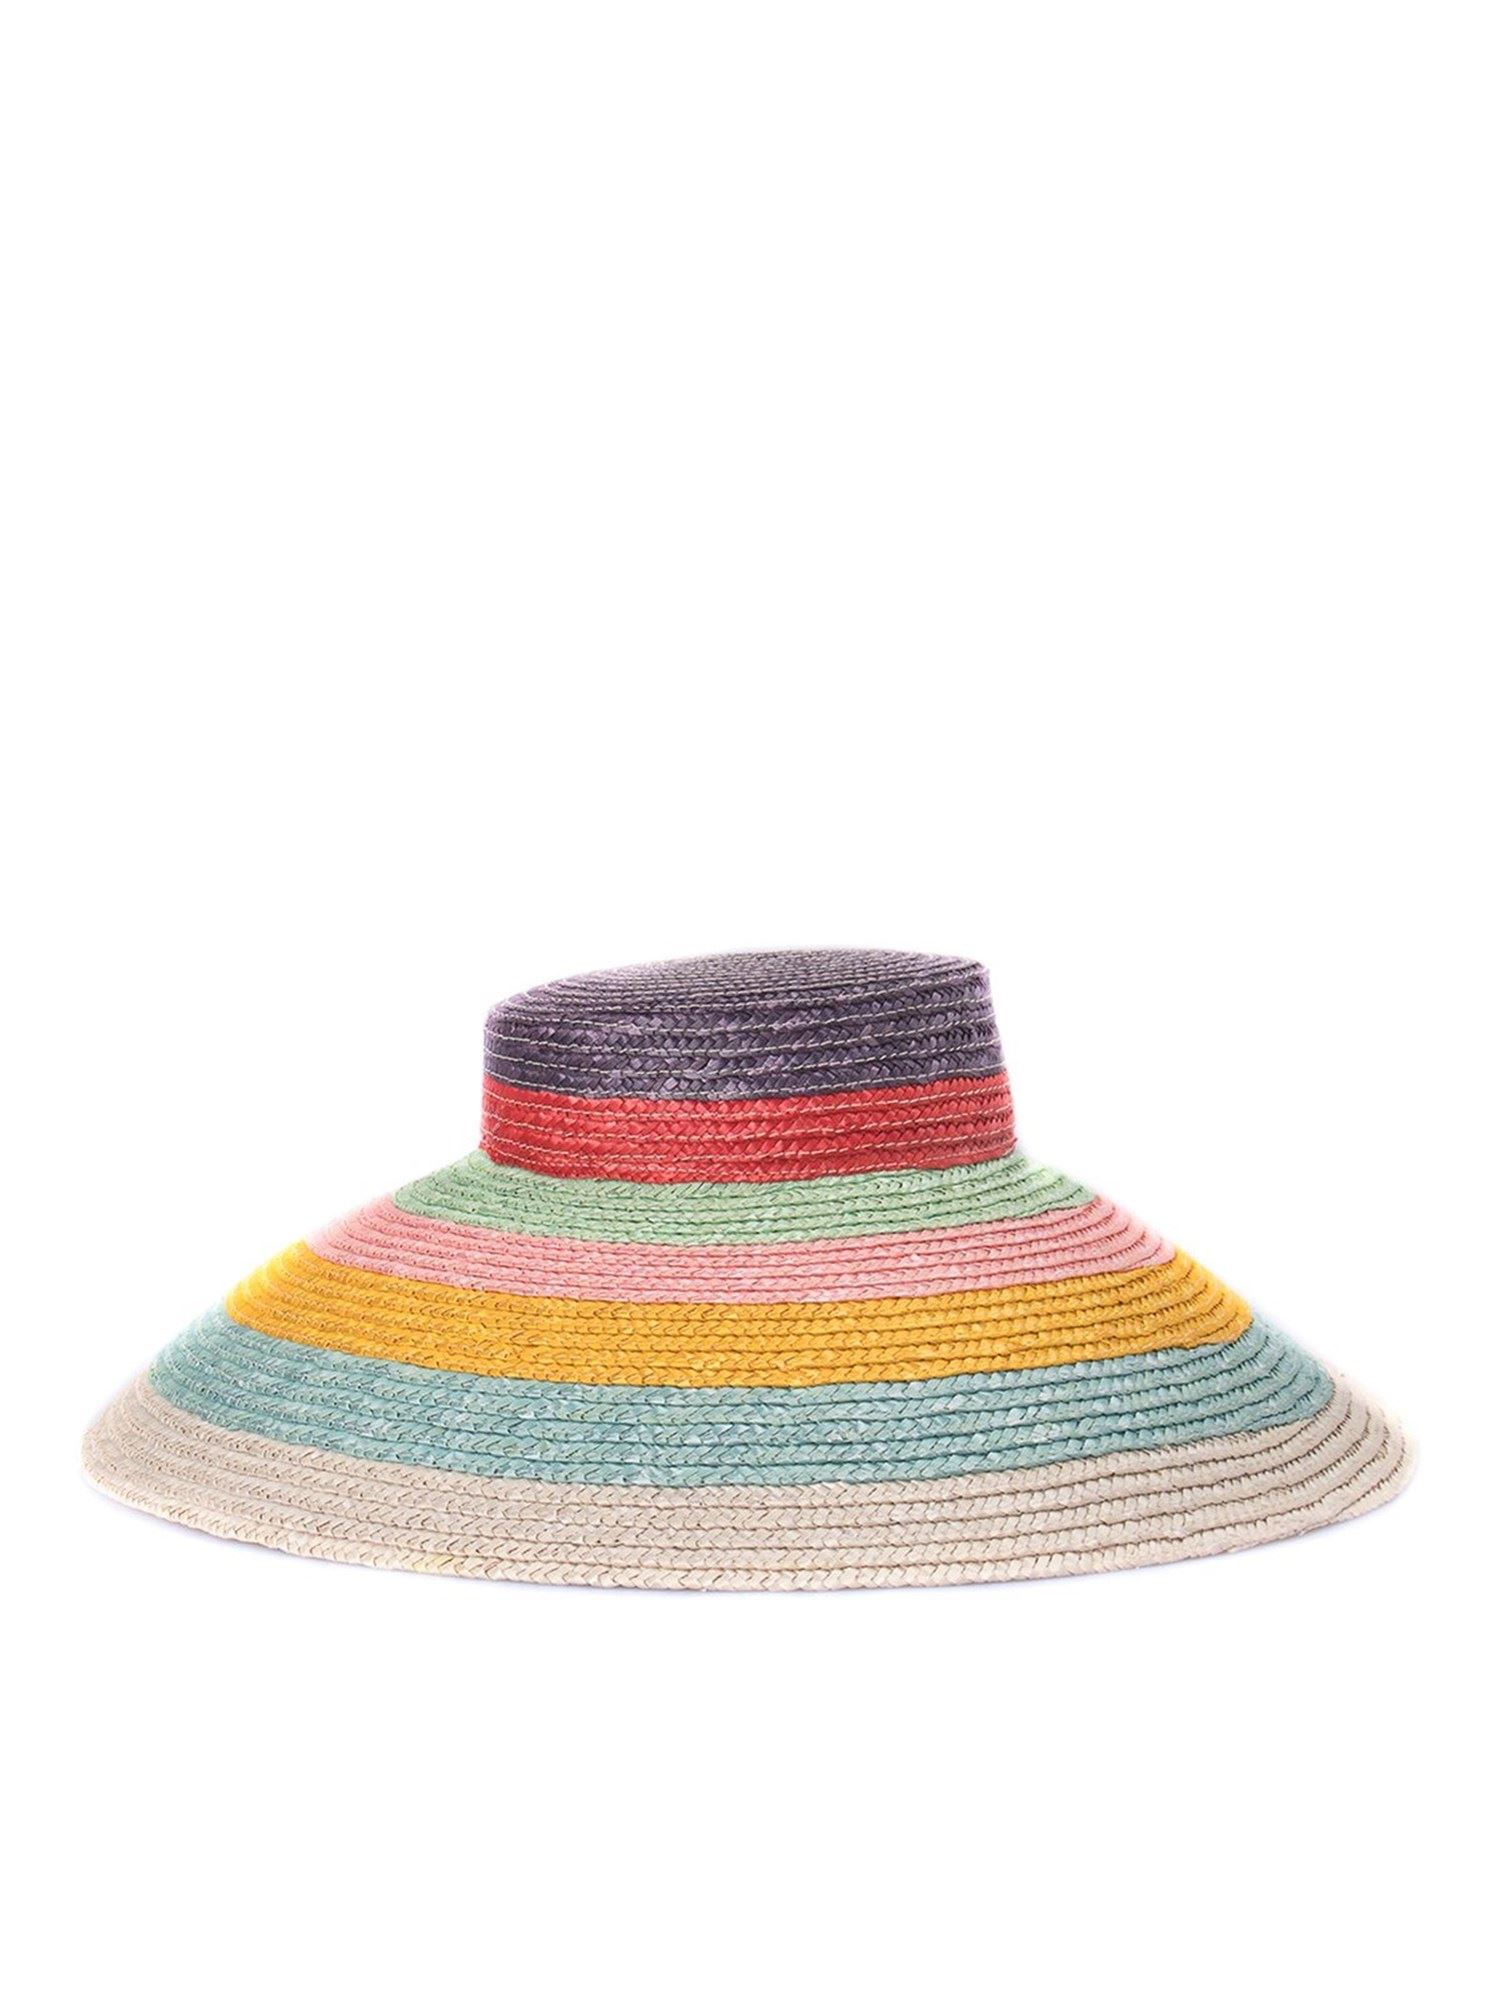 Missoni MULTICOLOUR STRIPED STRAW HAT